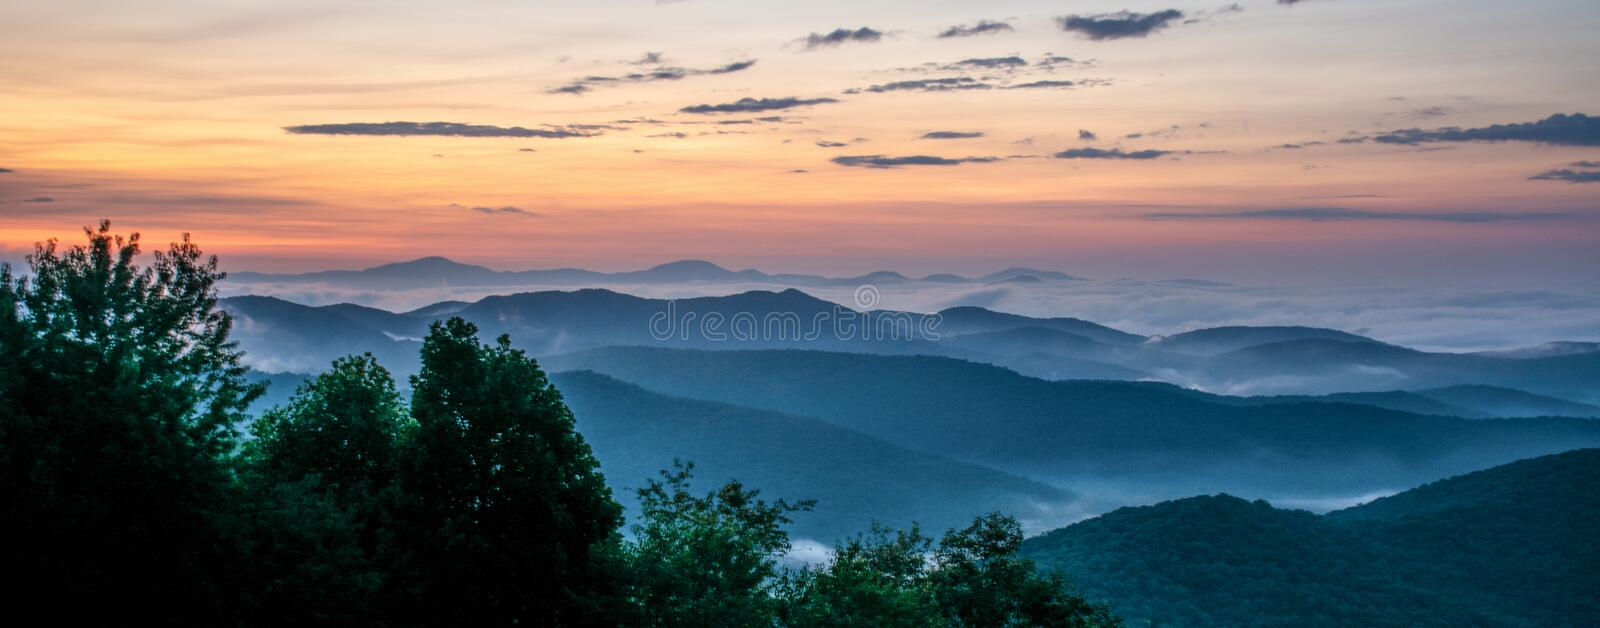 Dawn On The Blue Ridge-Allee im Westnorth carolina stockbilder